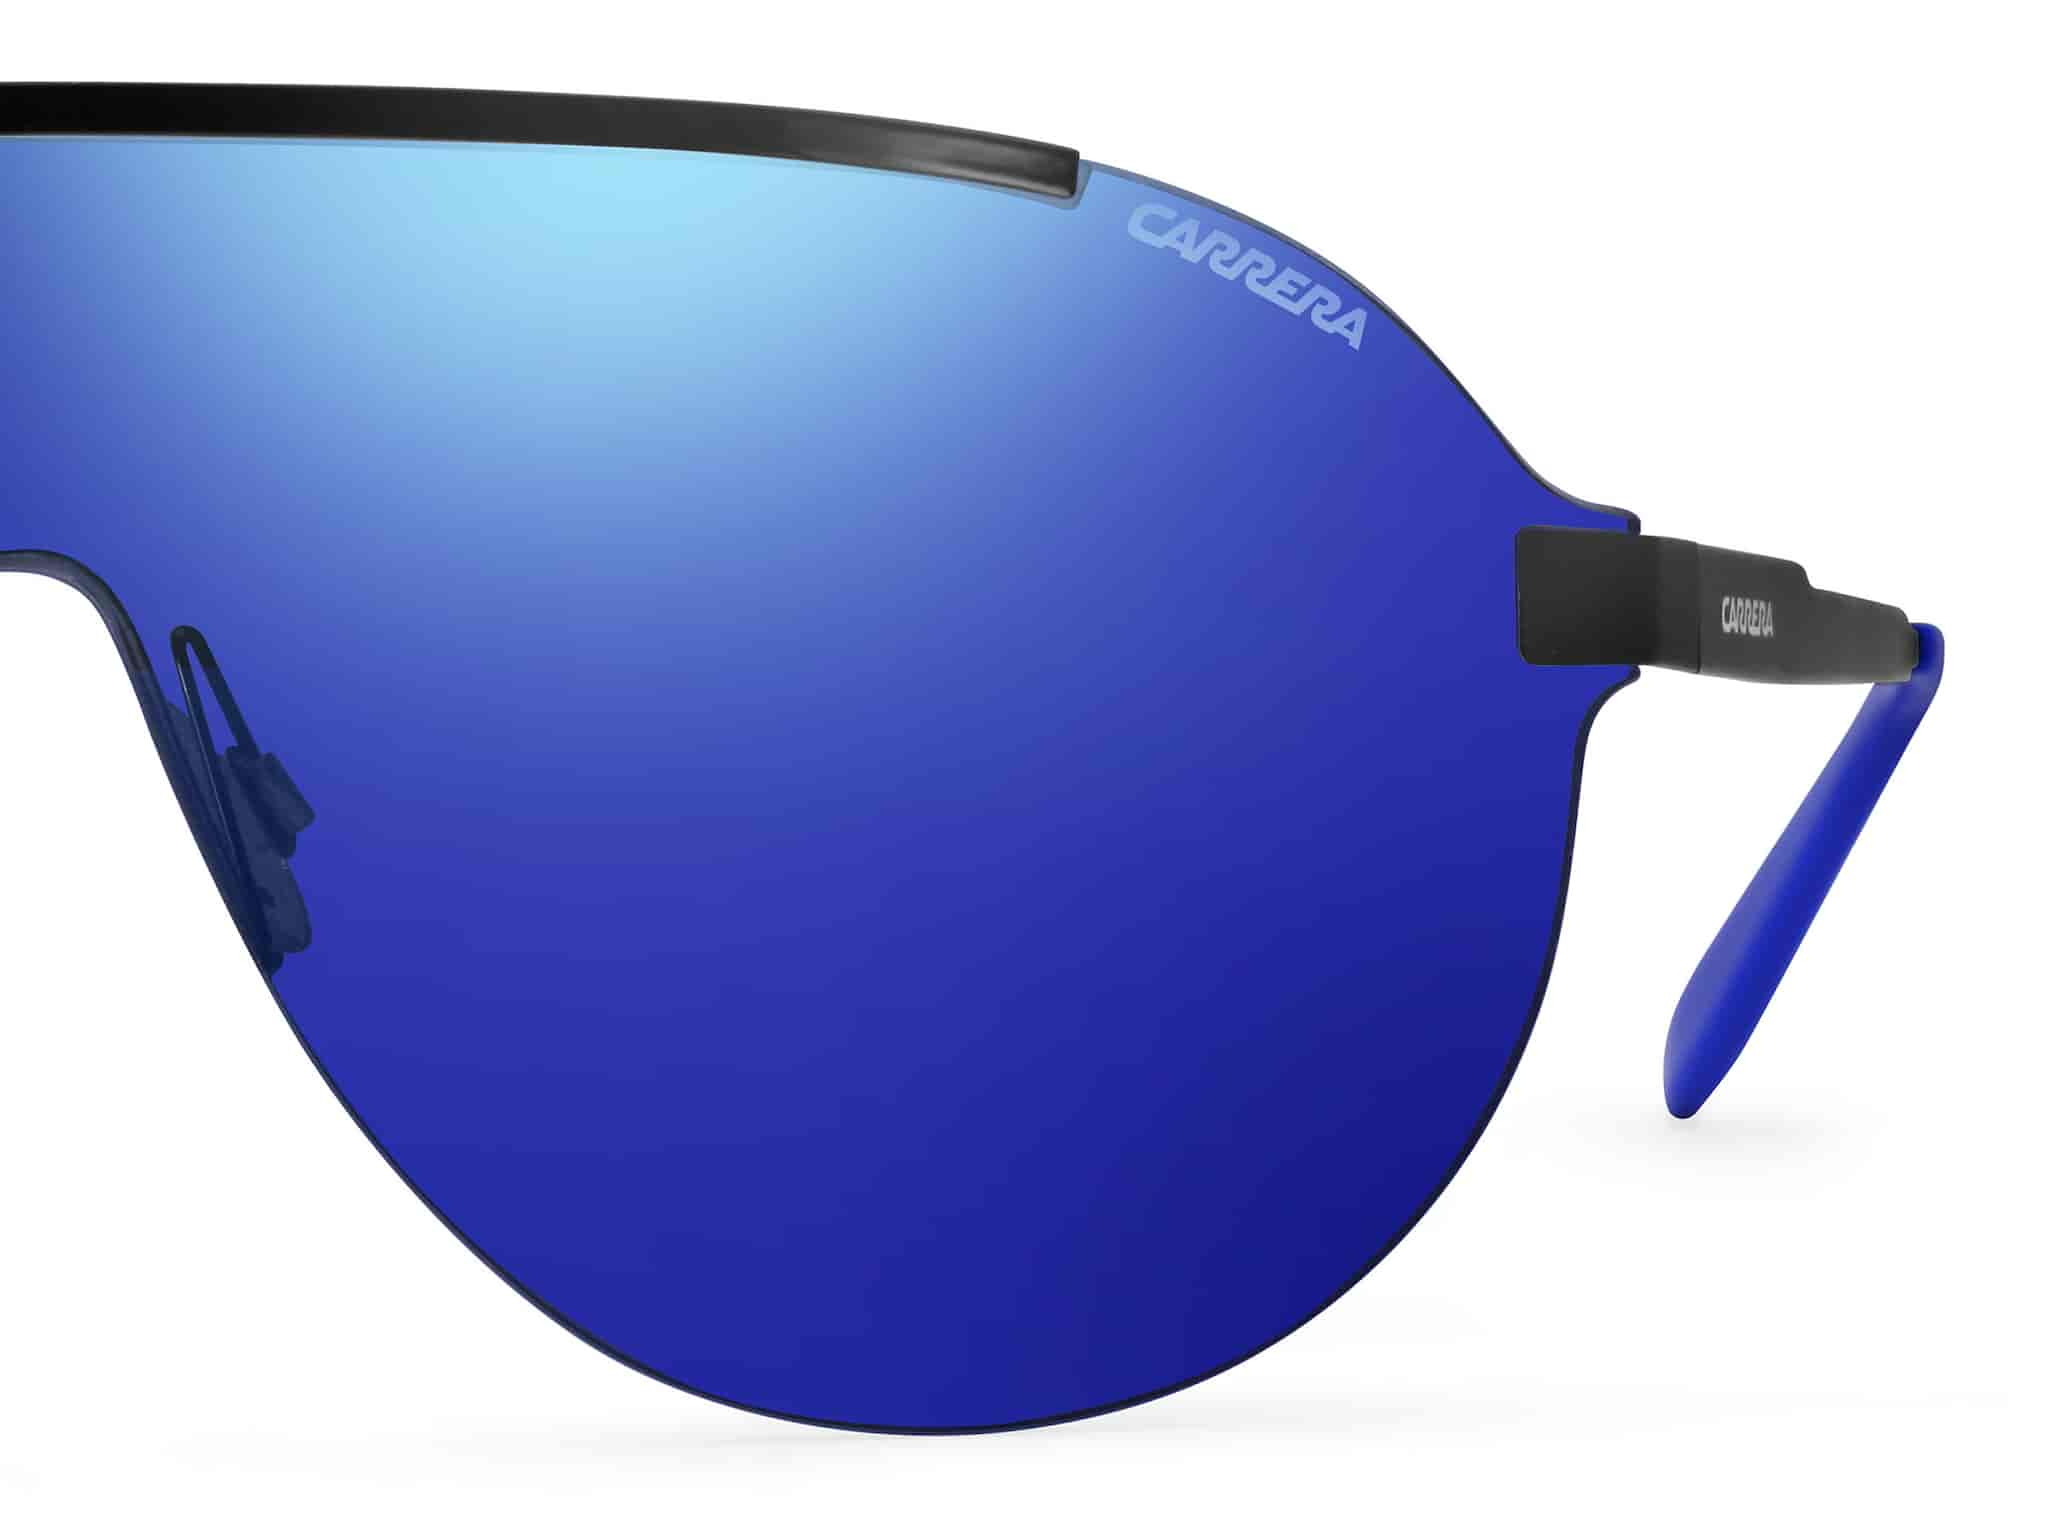 Carrera Sunglasses Price In India  carrera 92 s uni sunglasses black 247548fnb991g features